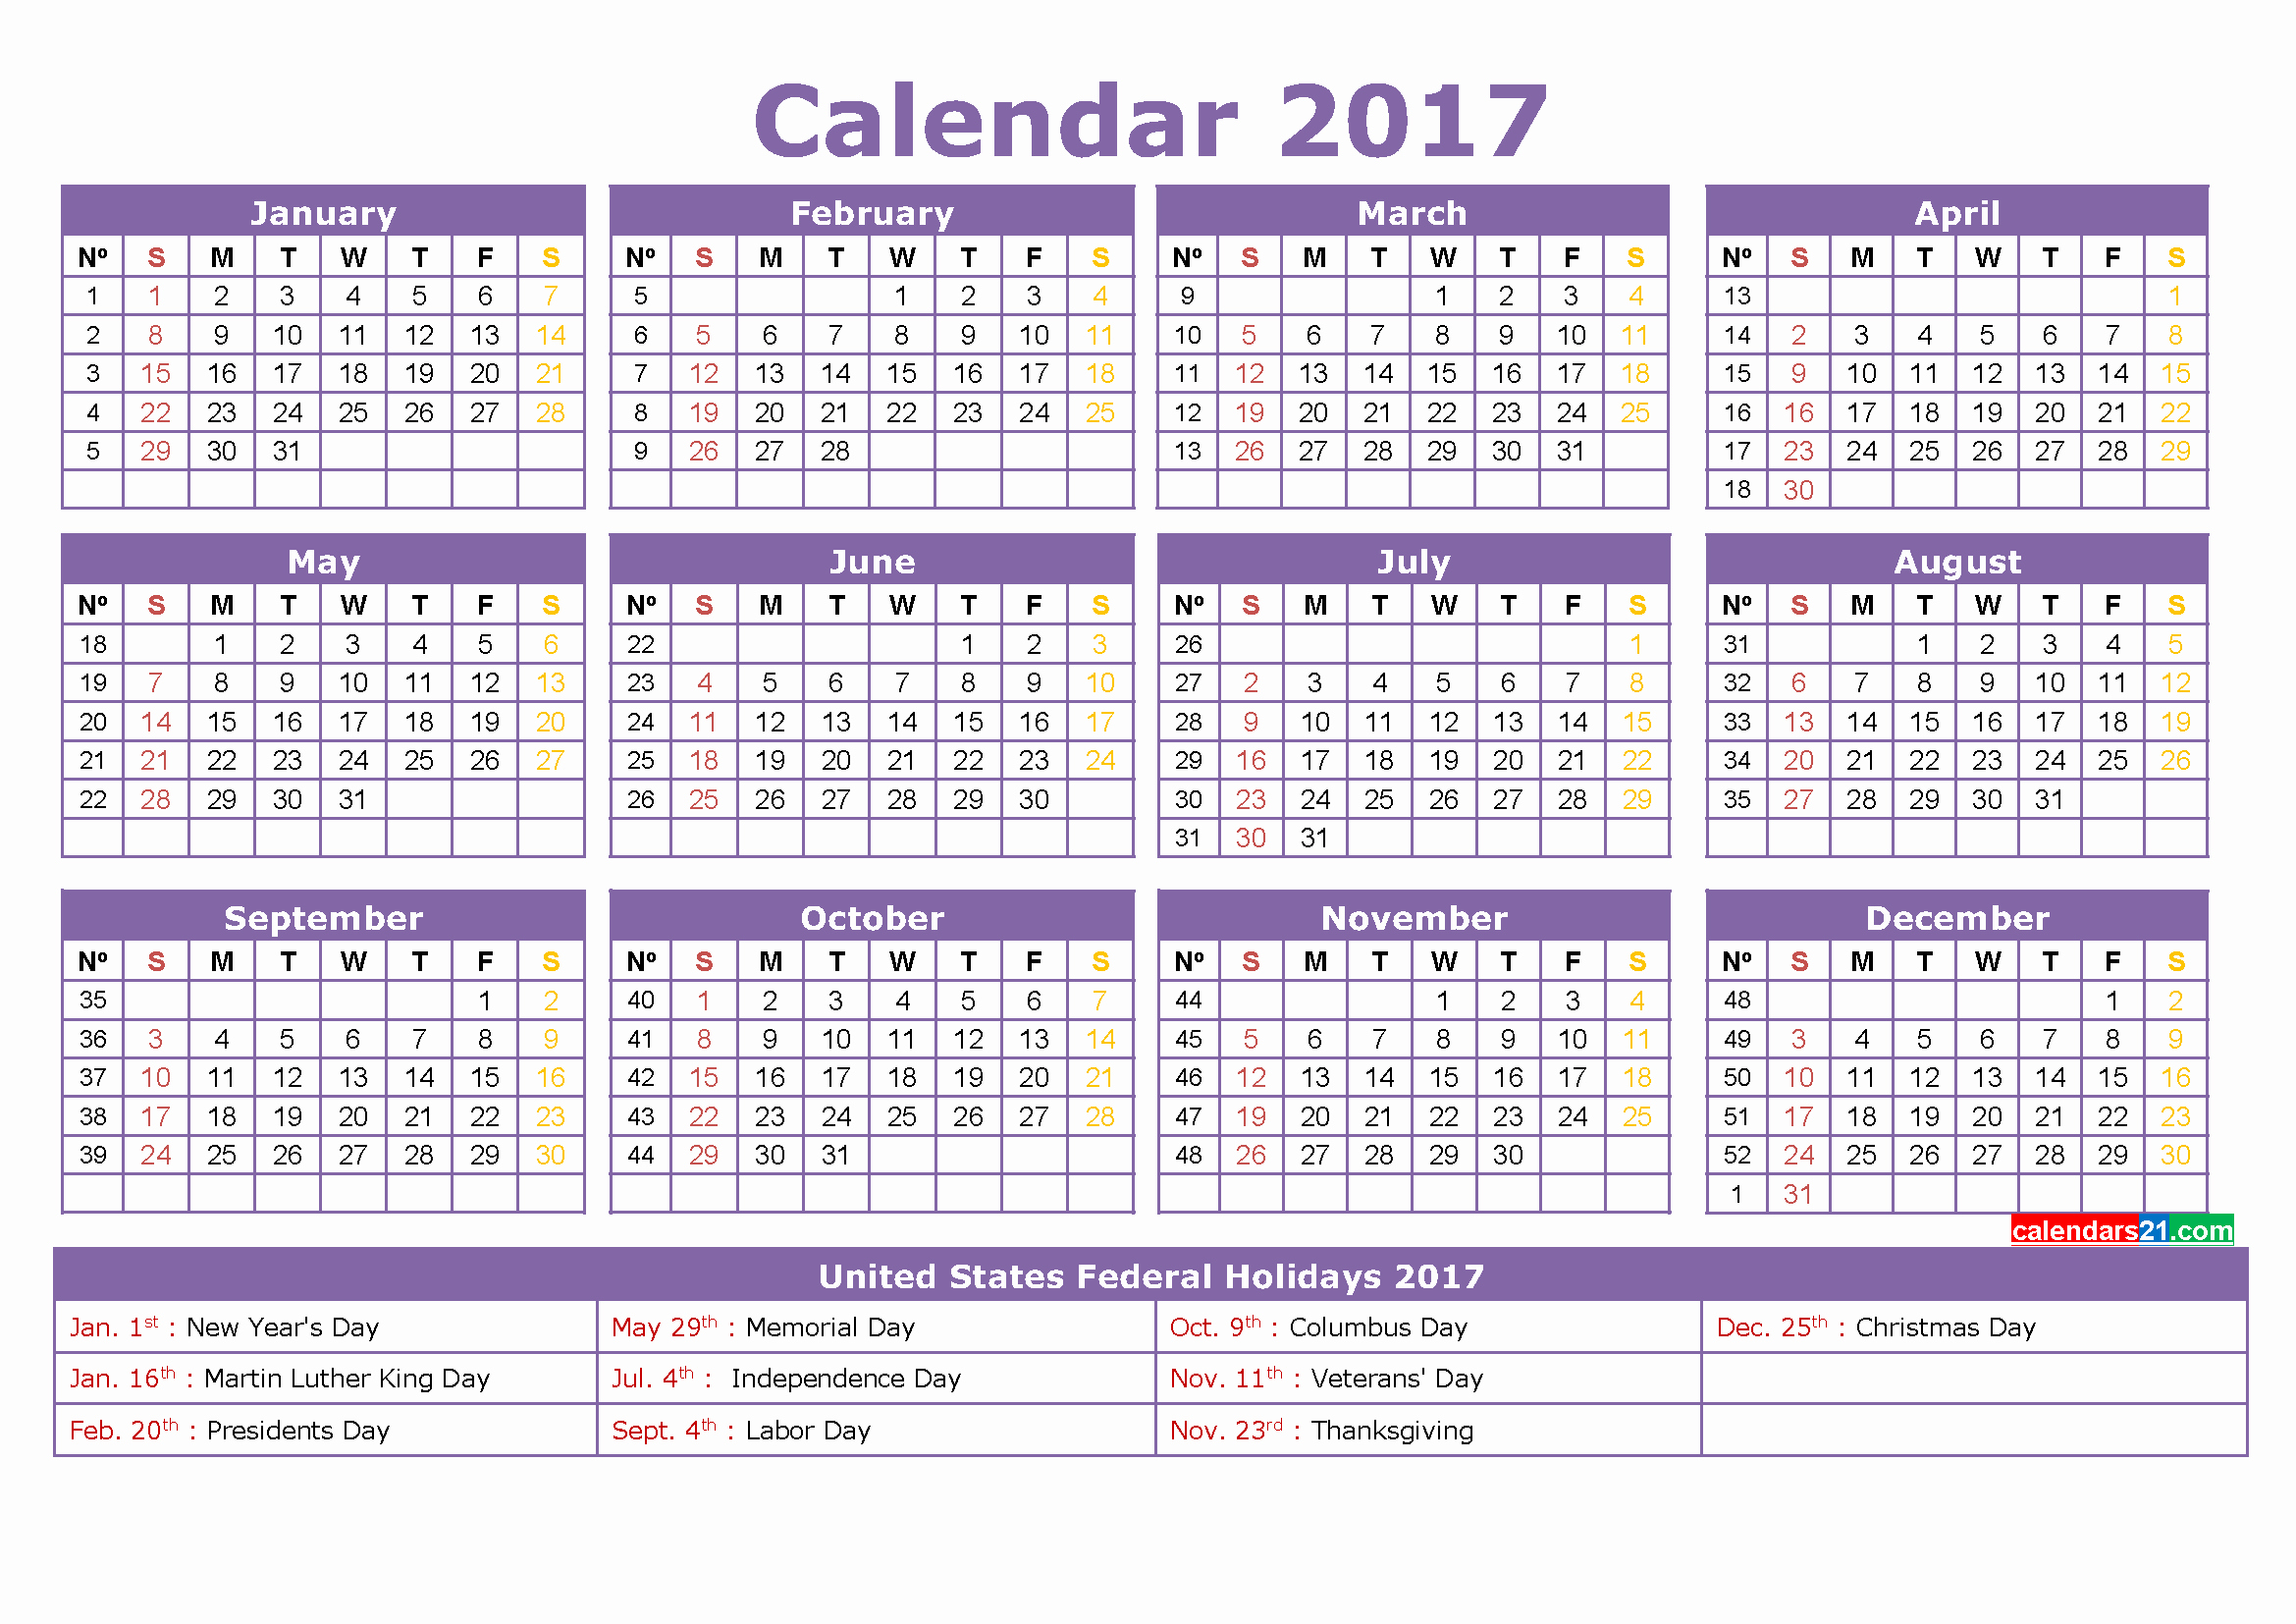 2017 Calendar with Holidays Template Elegant Calendar 2017 50 Important Calendar Templates Of 2017